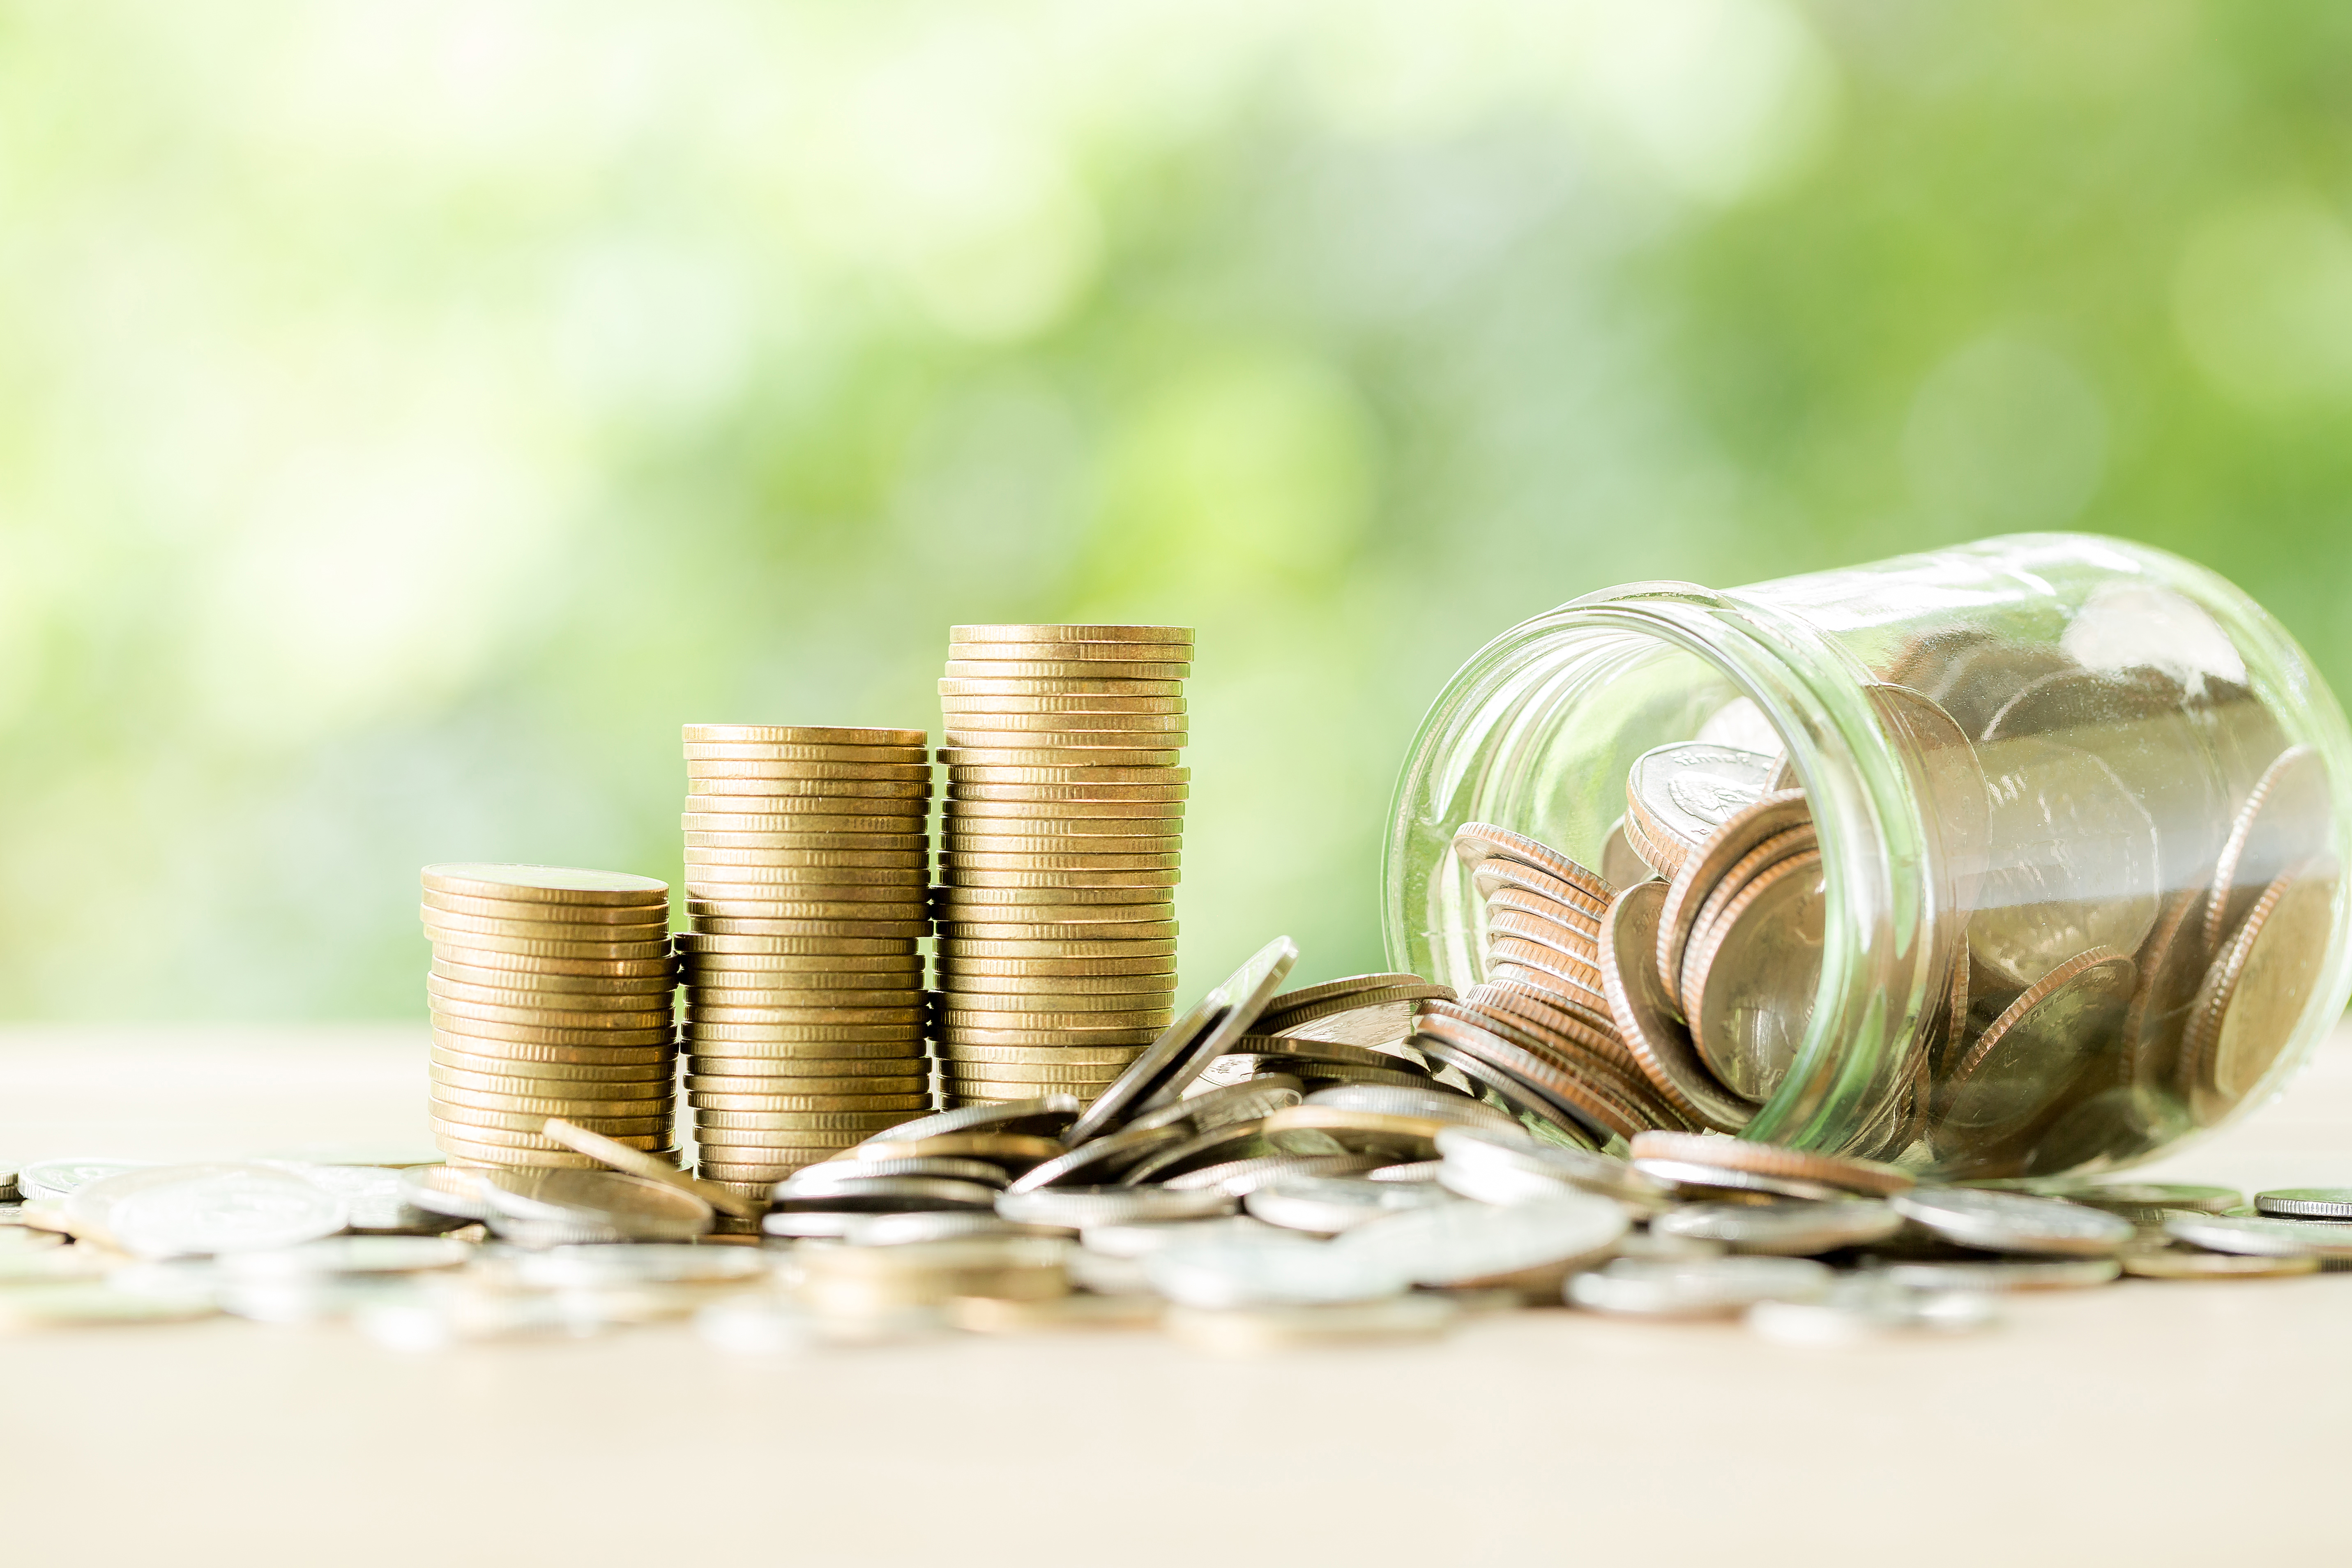 Coin on wooden table in front of green bokeh background. coins a concept of investment and saving moneys.